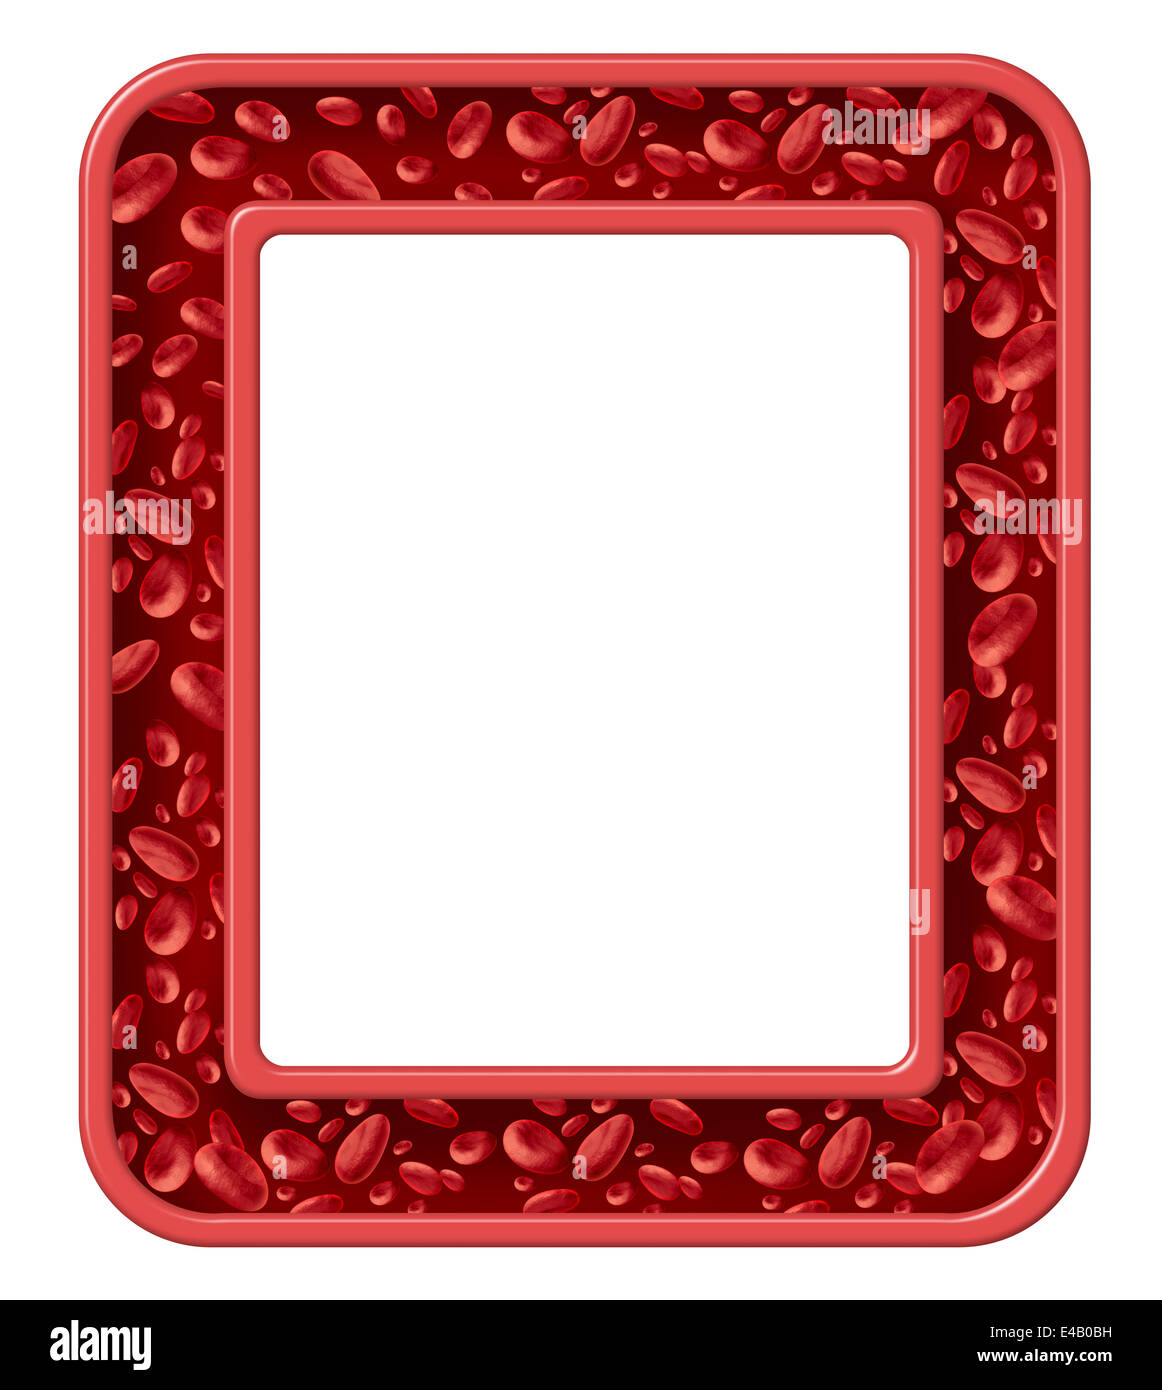 Human blood frame and healthy circulation border design for Html cell border